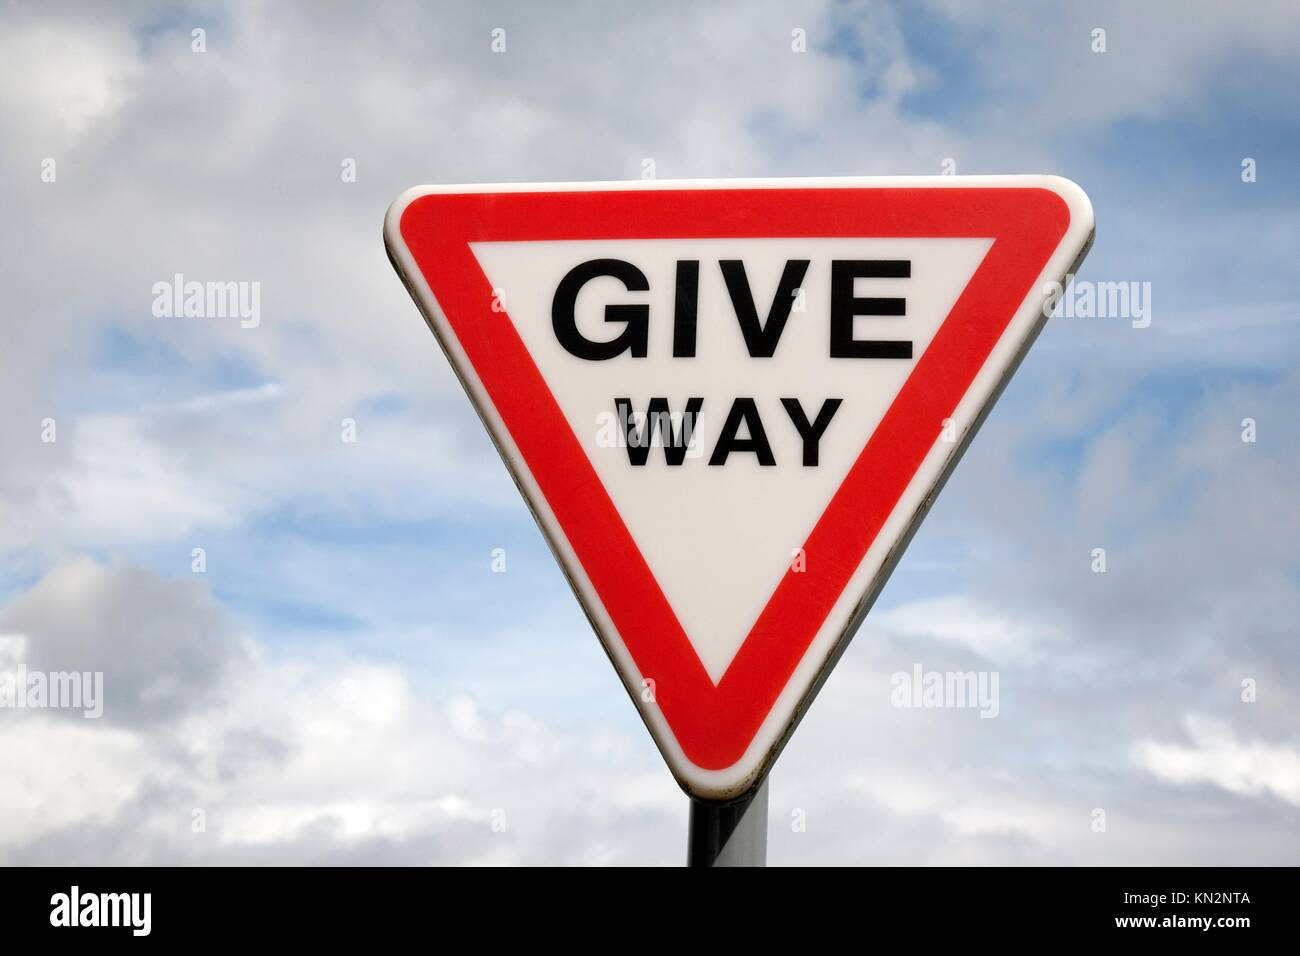 Give Way Sign against blue sky background Stock Photo